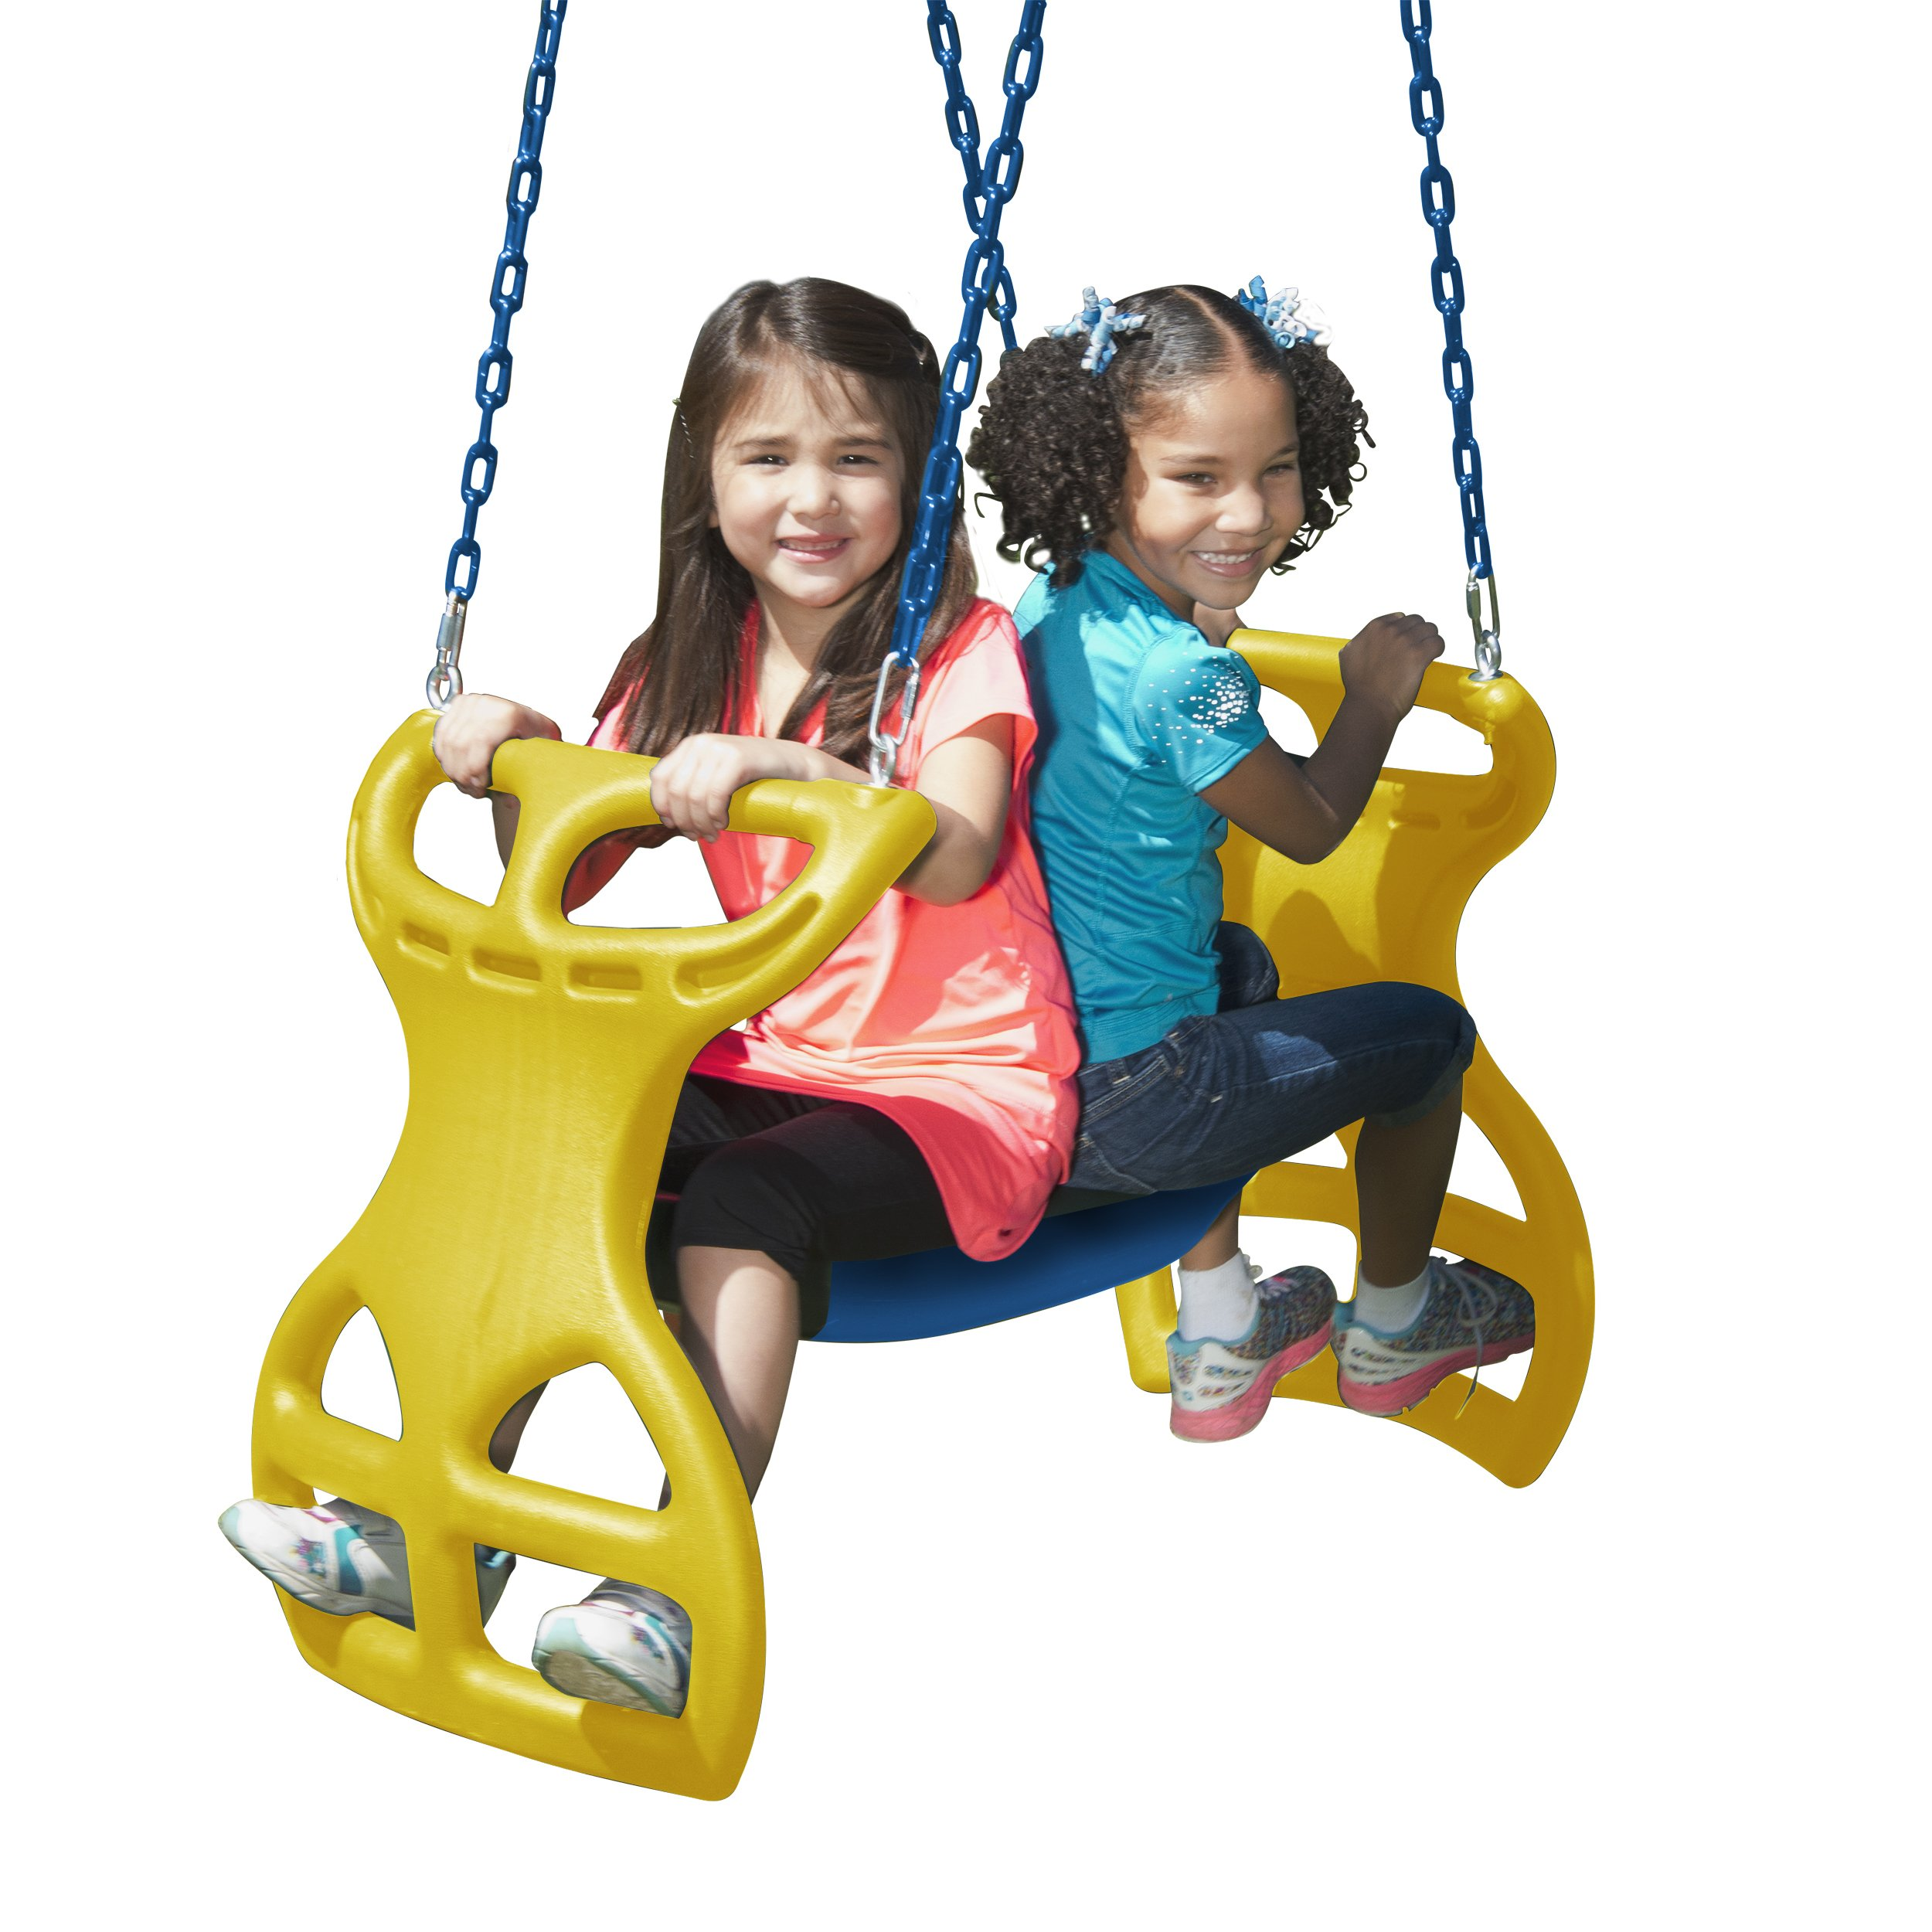 Cheap Child Life Swing Set Find Child Life Swing Set Deals On Line